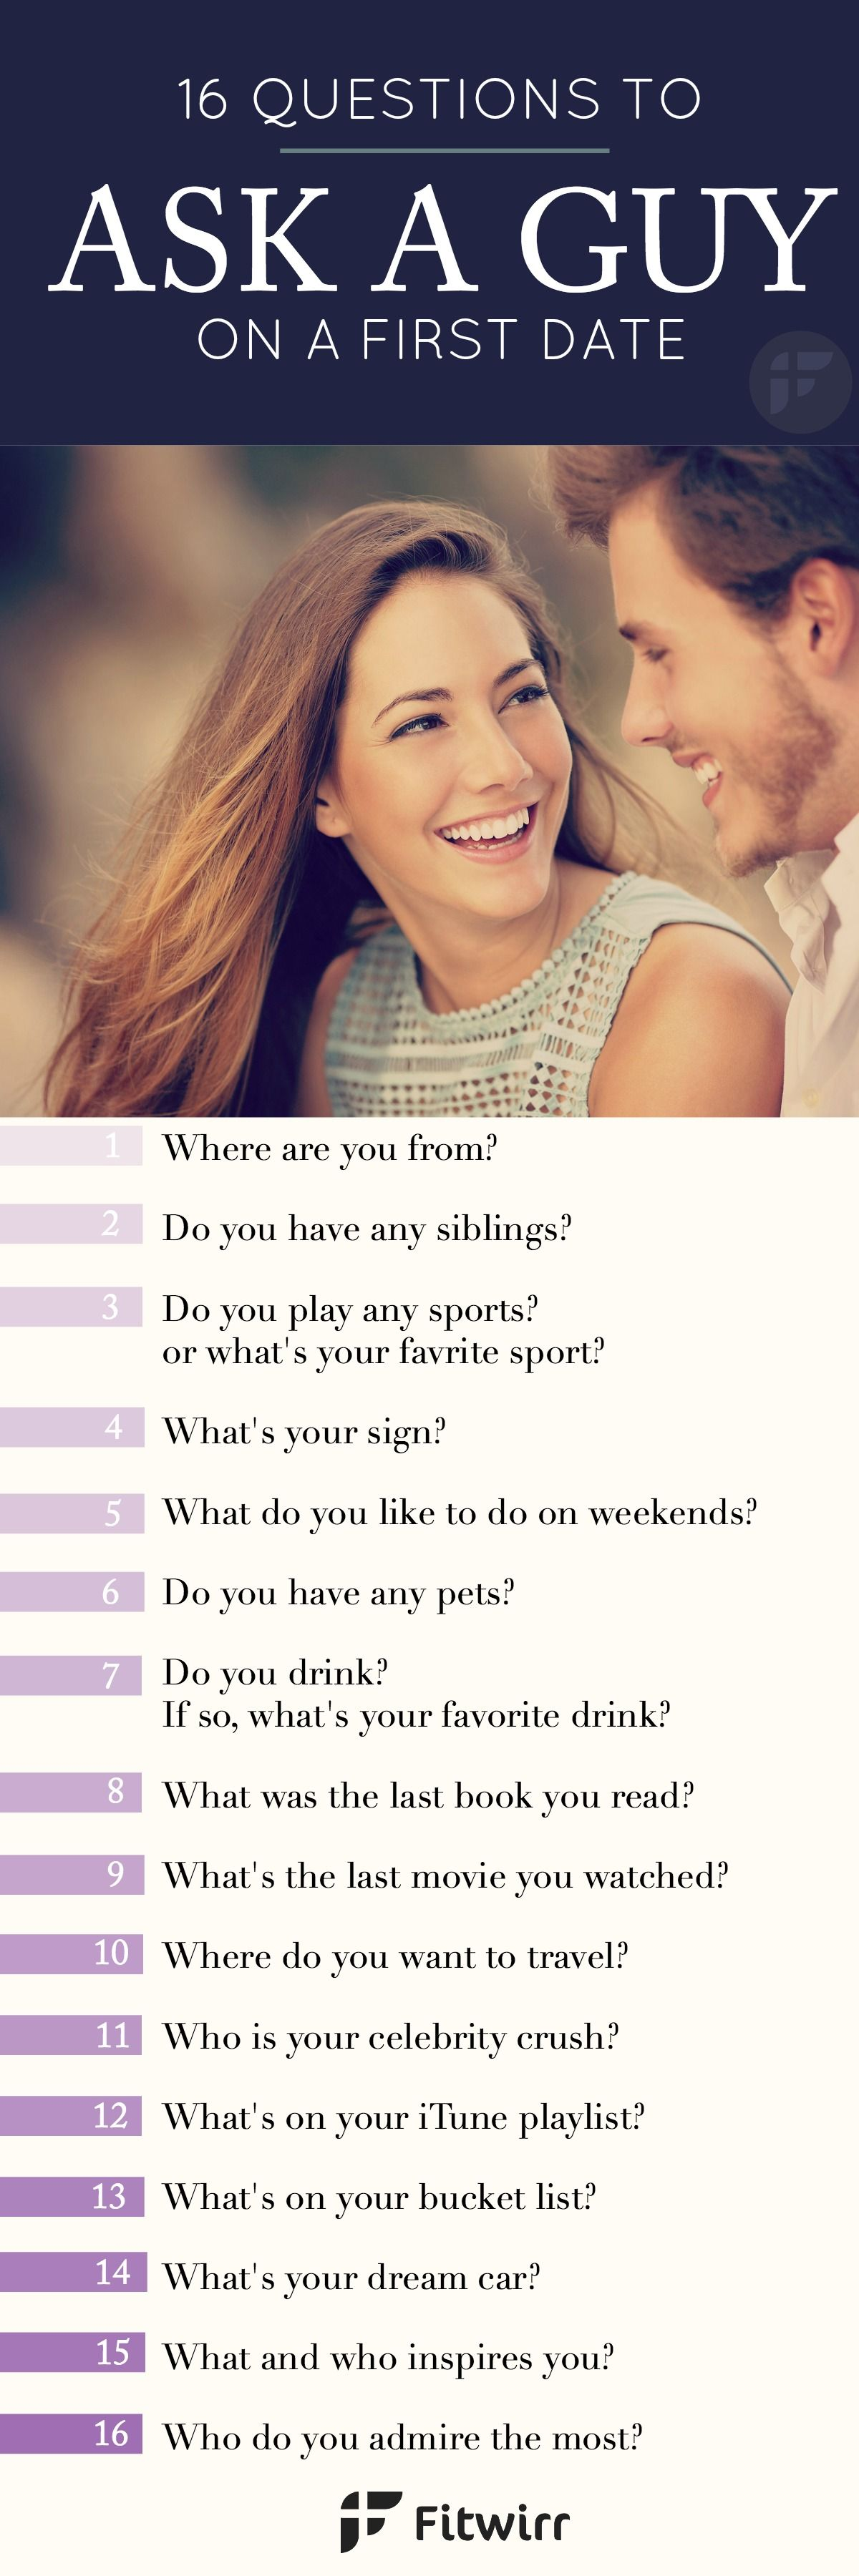 Sexual questions to ask a woman